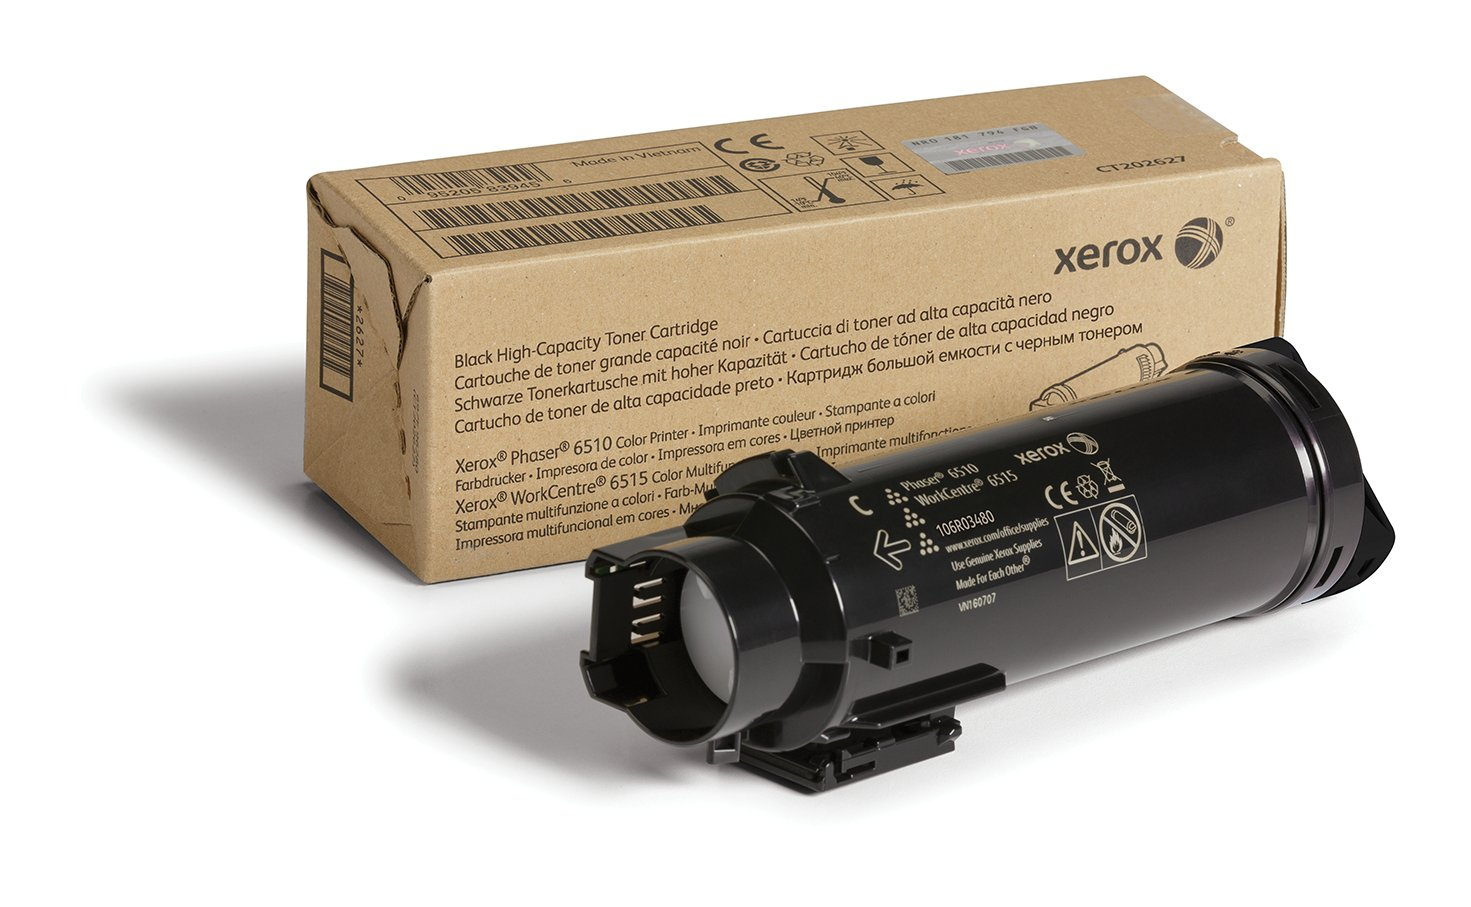 Genuine Xerox Black High Capacity Toner Cartridge – 106R03480 for use in Phaser 6510, WorkCentre 6515